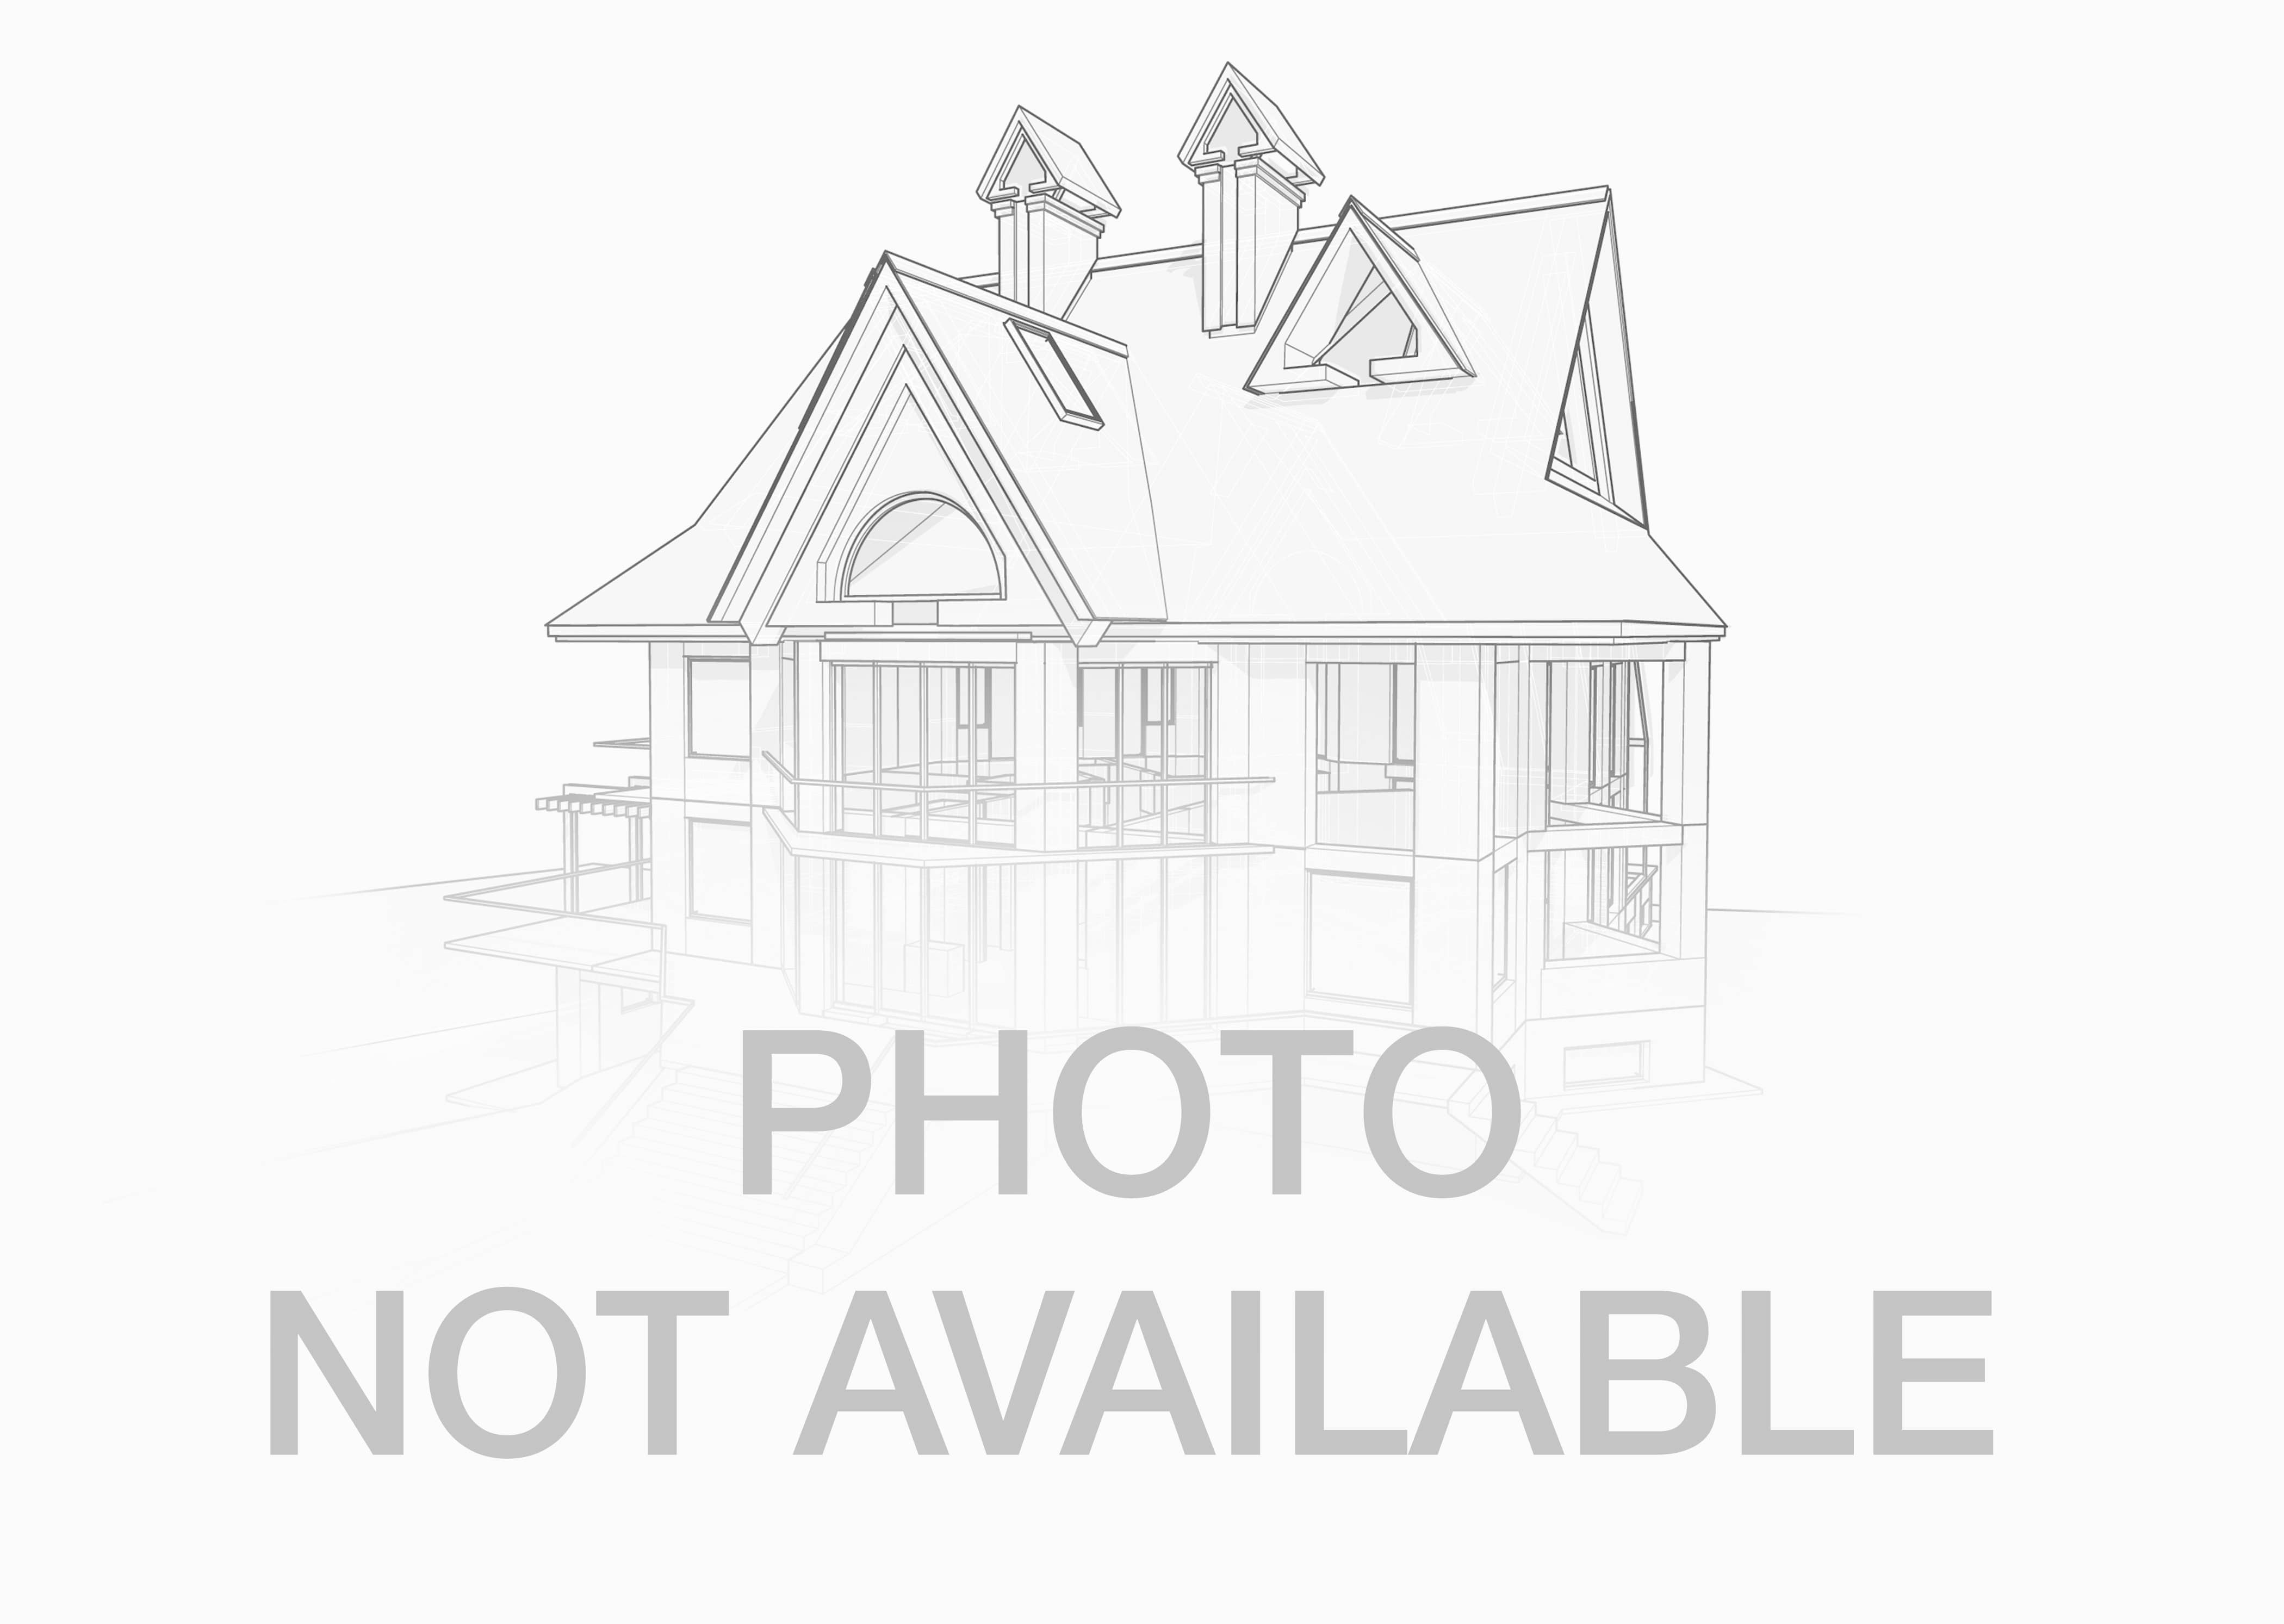 mc sherrystown singles View all mc sherrystown, pa hud listings in your area all hud homes that are currently on the market can be found here on hudcom find hud.